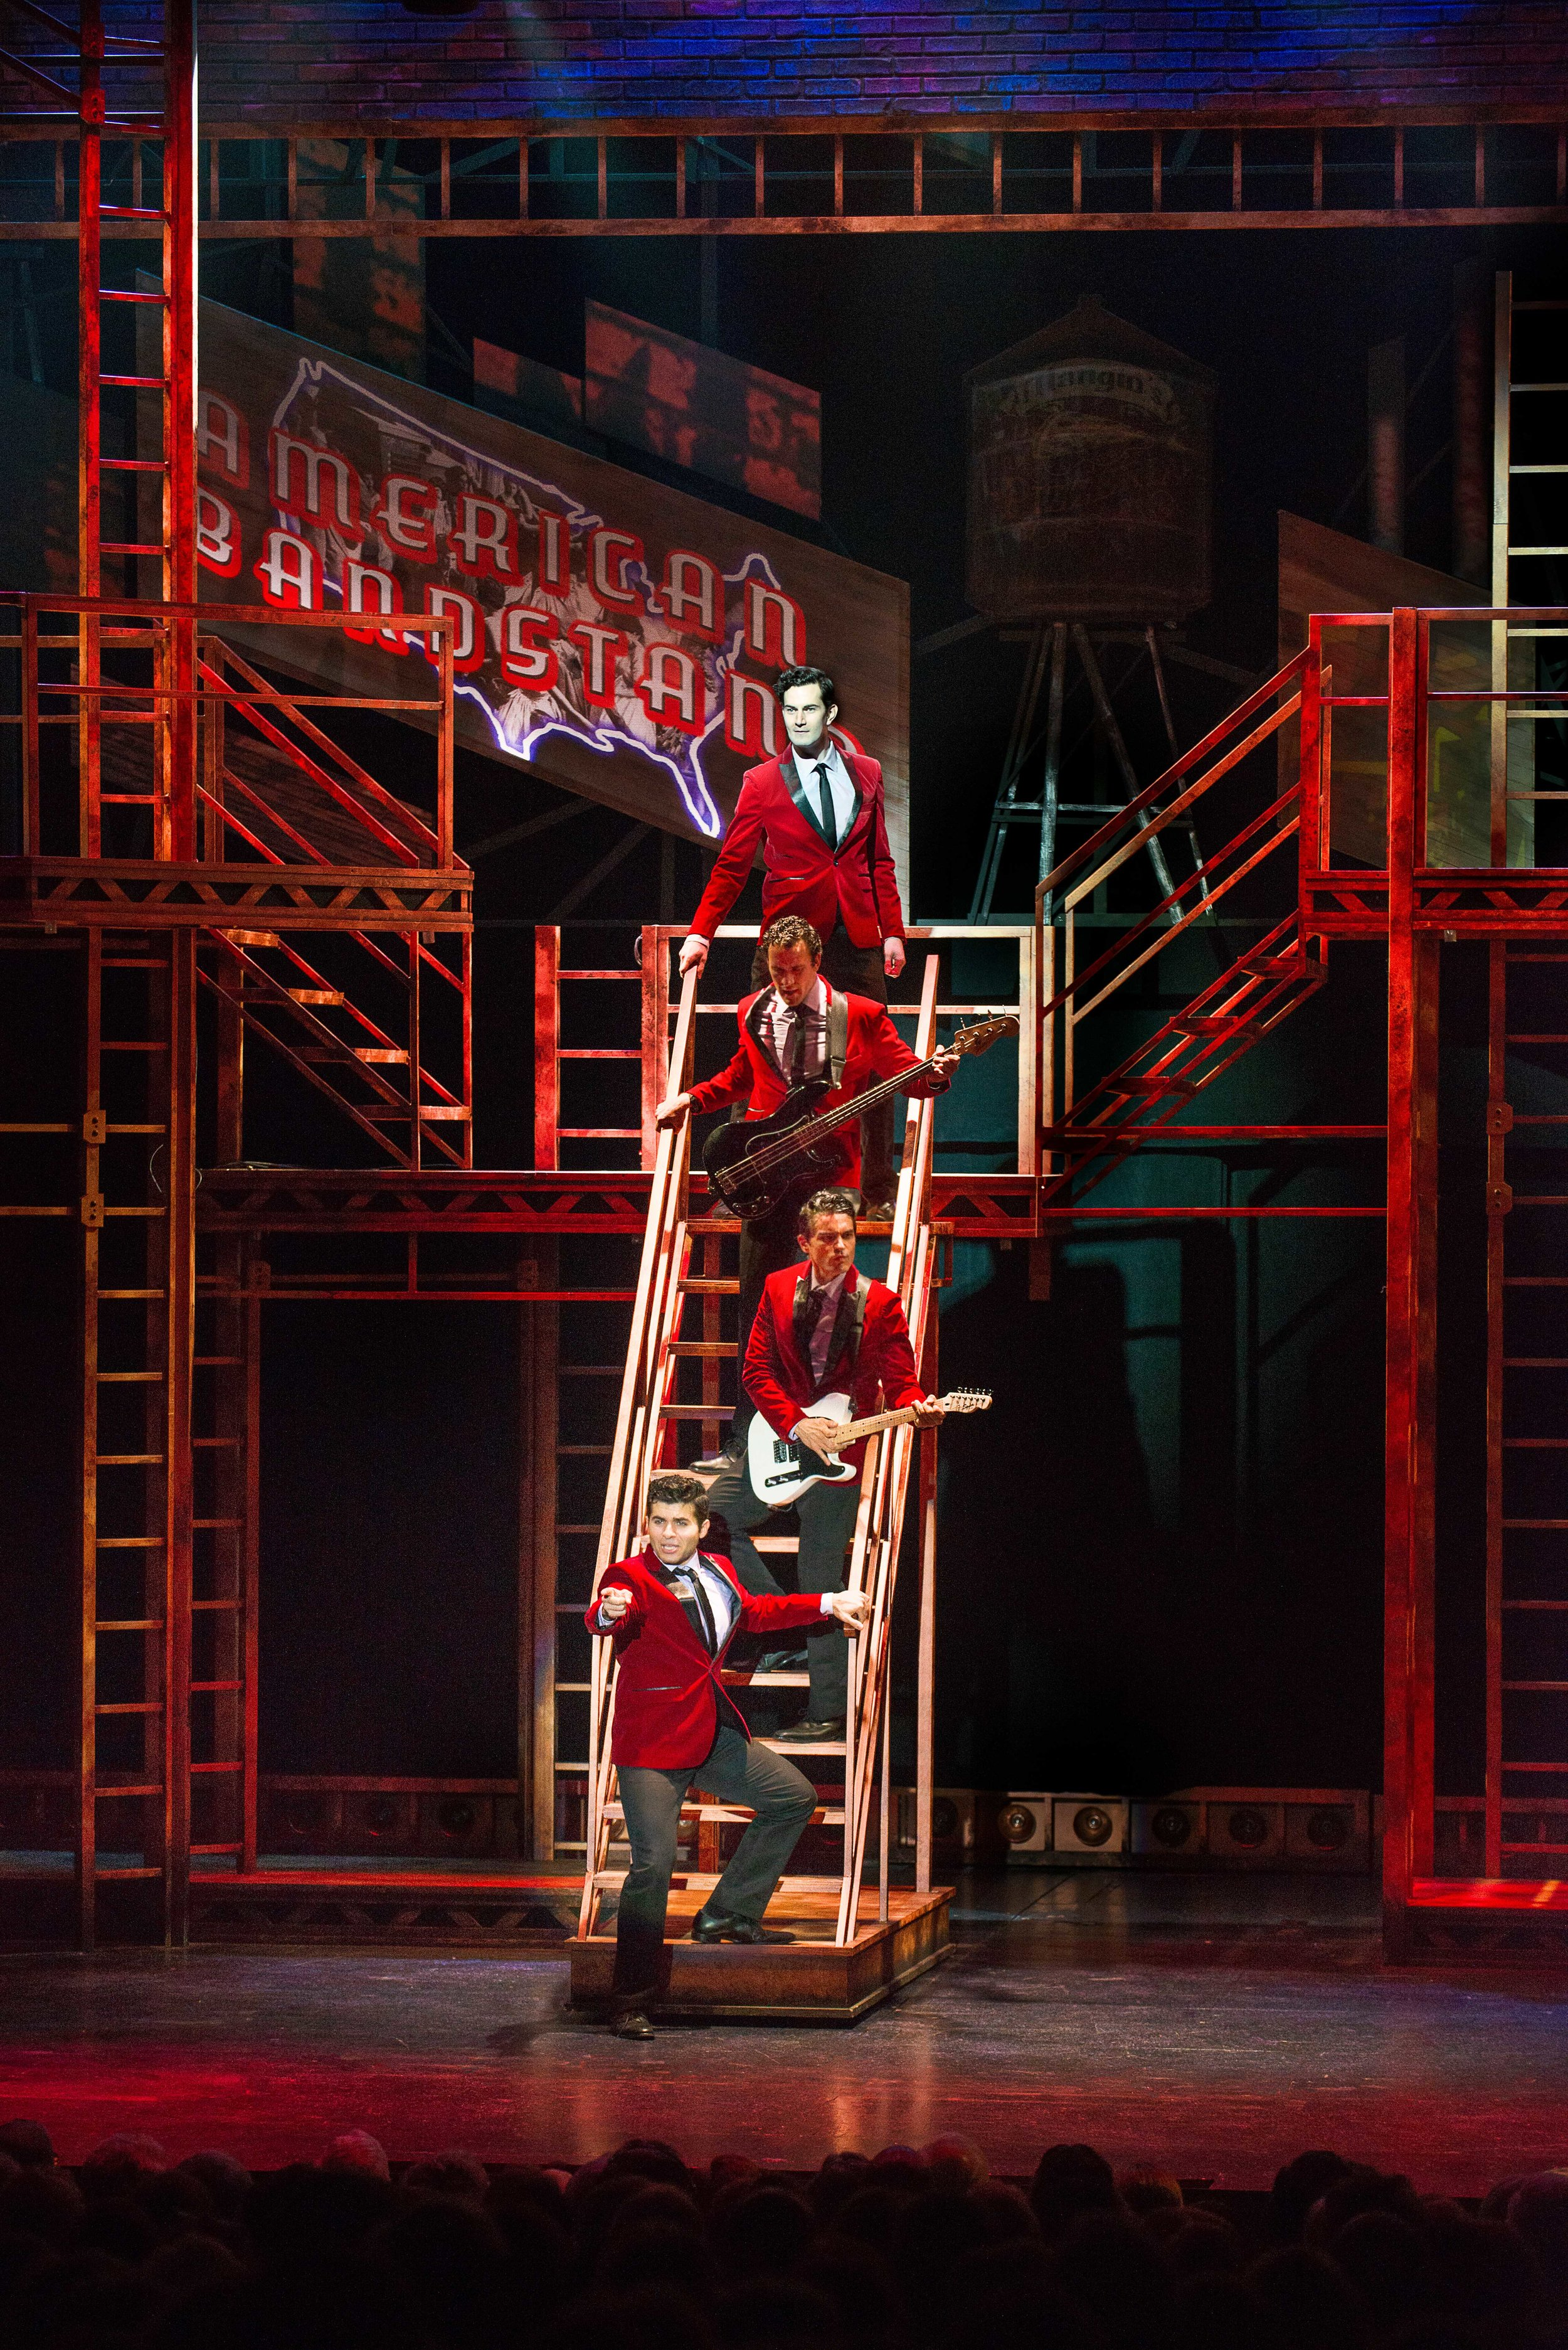 Andy Christopher, Matthew Amira, Matt Magnusson, and Jonathan Mousset in Jersey Boys at the Ogunquit Playhouse, 2018. Photo by Gary Ng.